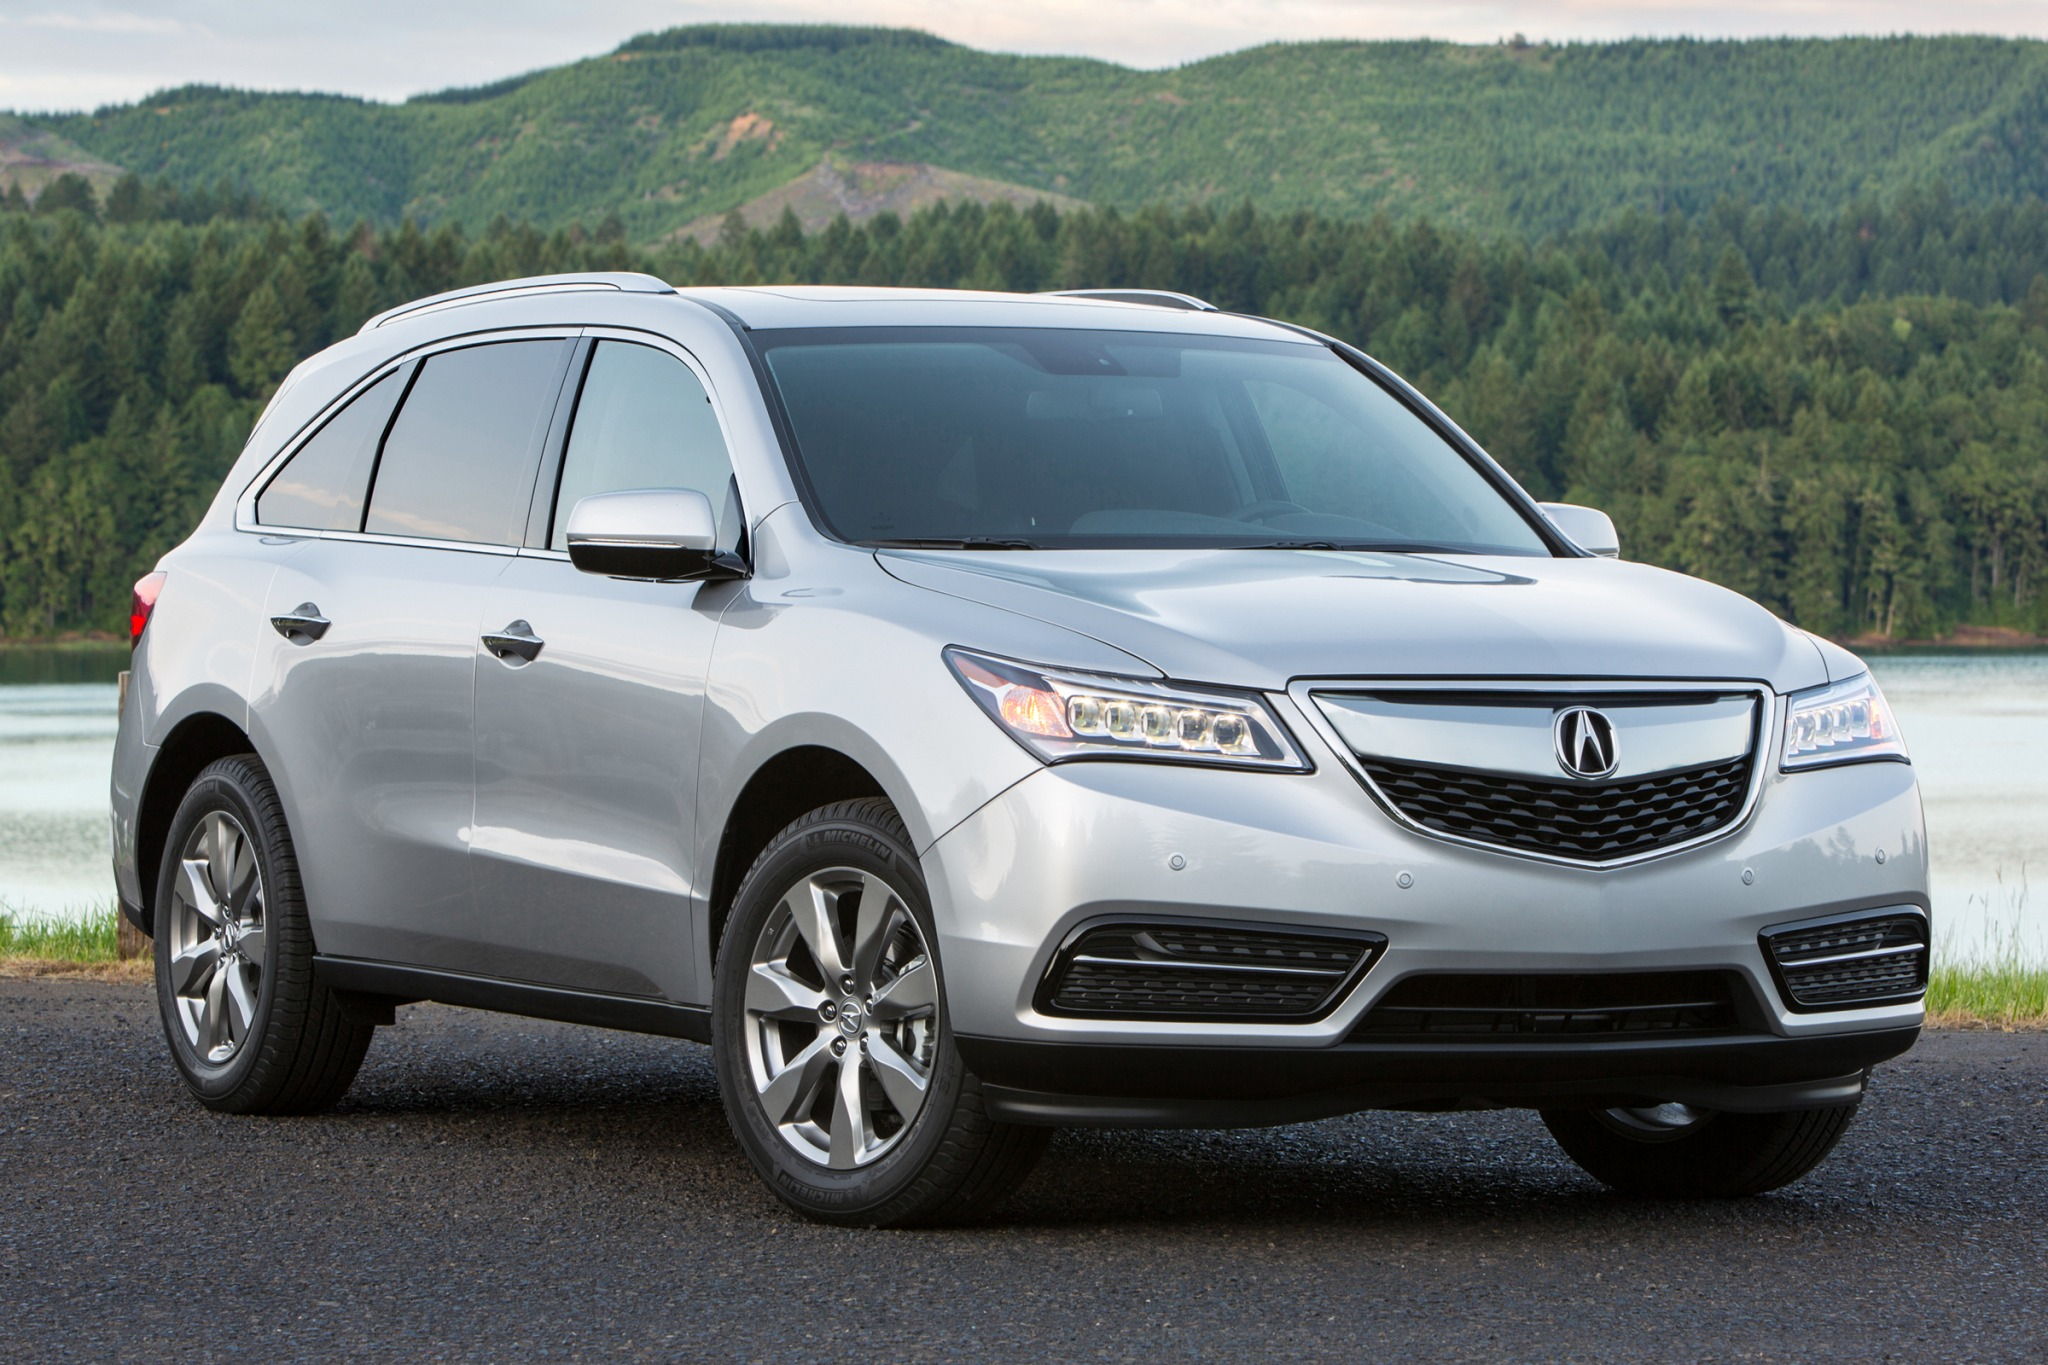 2016 acura mdx 4dr suv sh awd wtechnology entertainment and acurawatch plus packages fq oem 2 2048